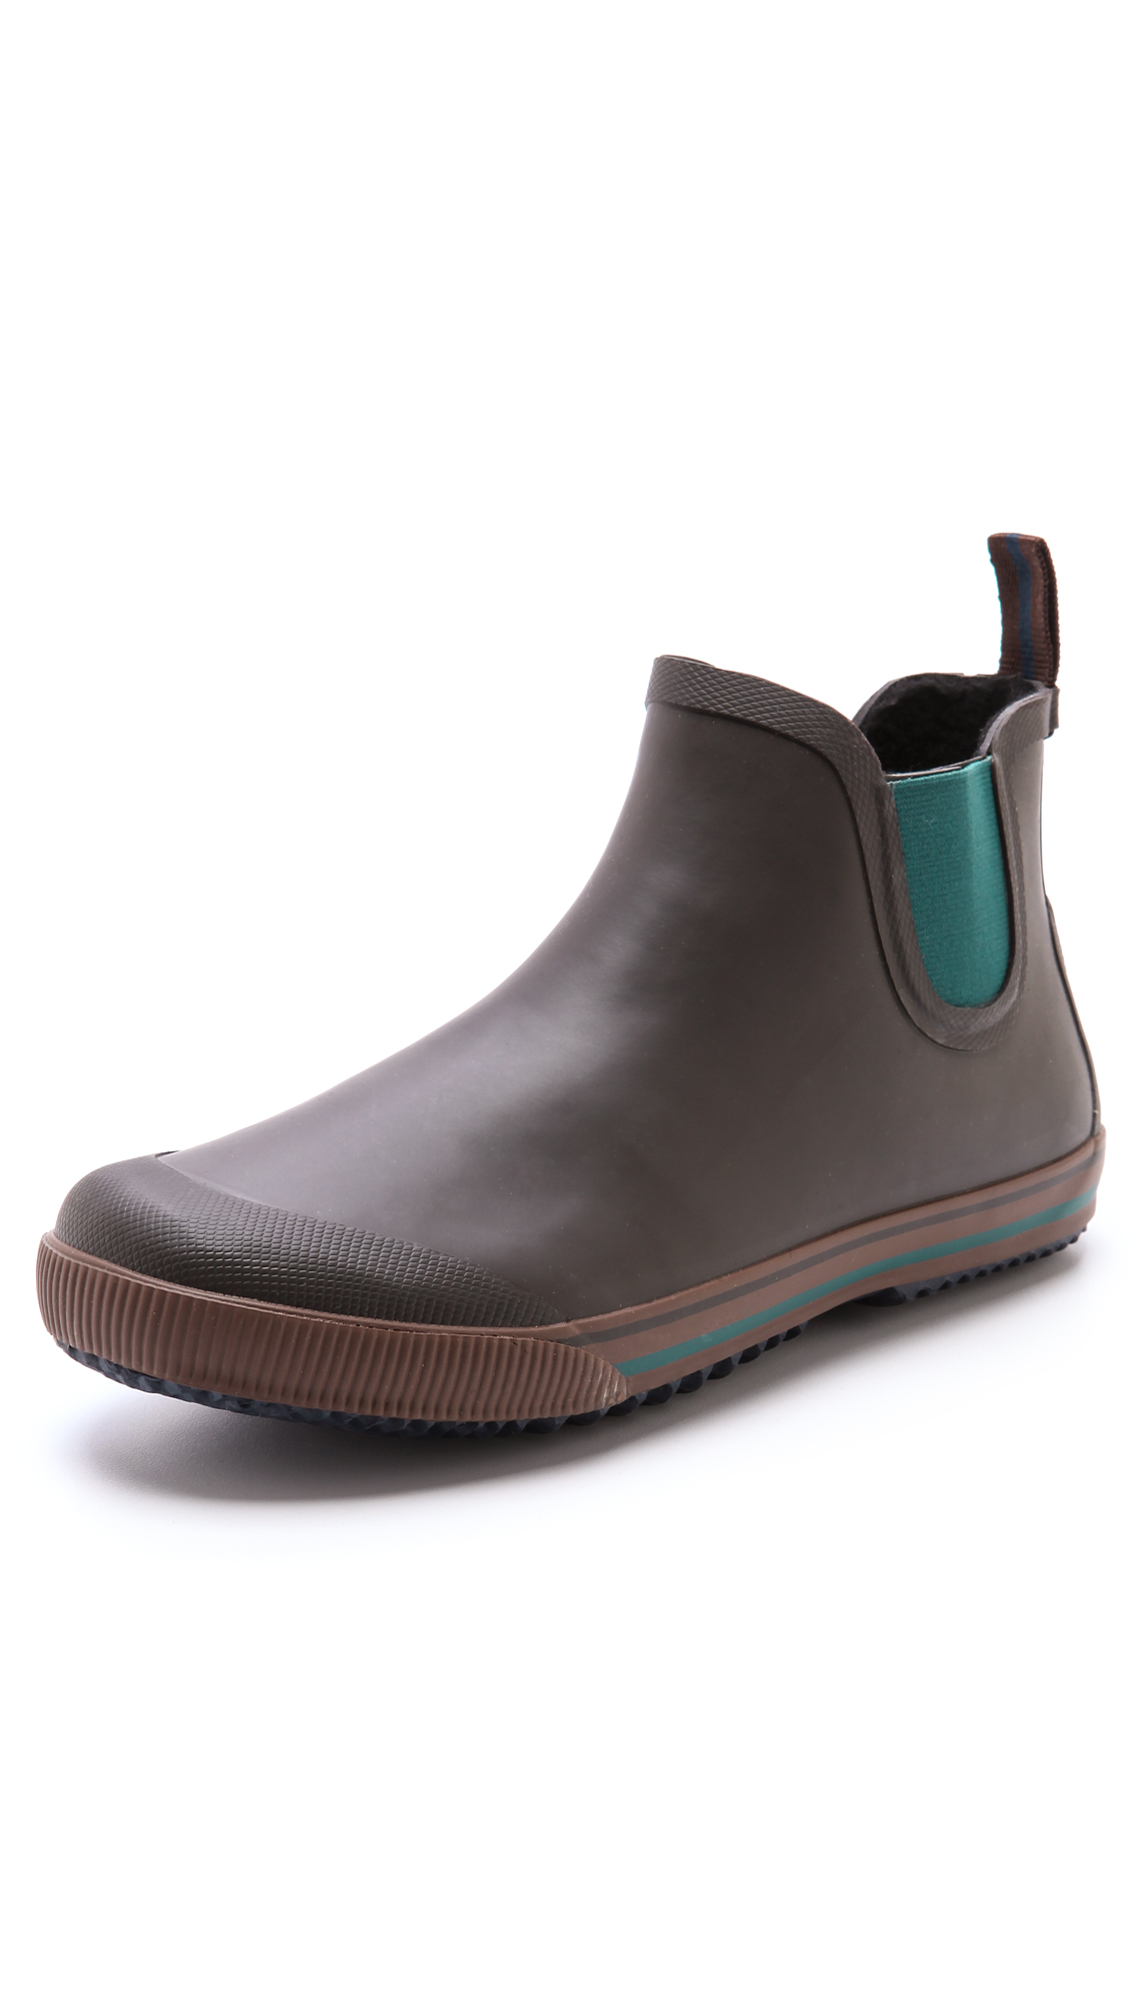 Tretorn Strala Vinter Boots In Brown For Men Chocolate